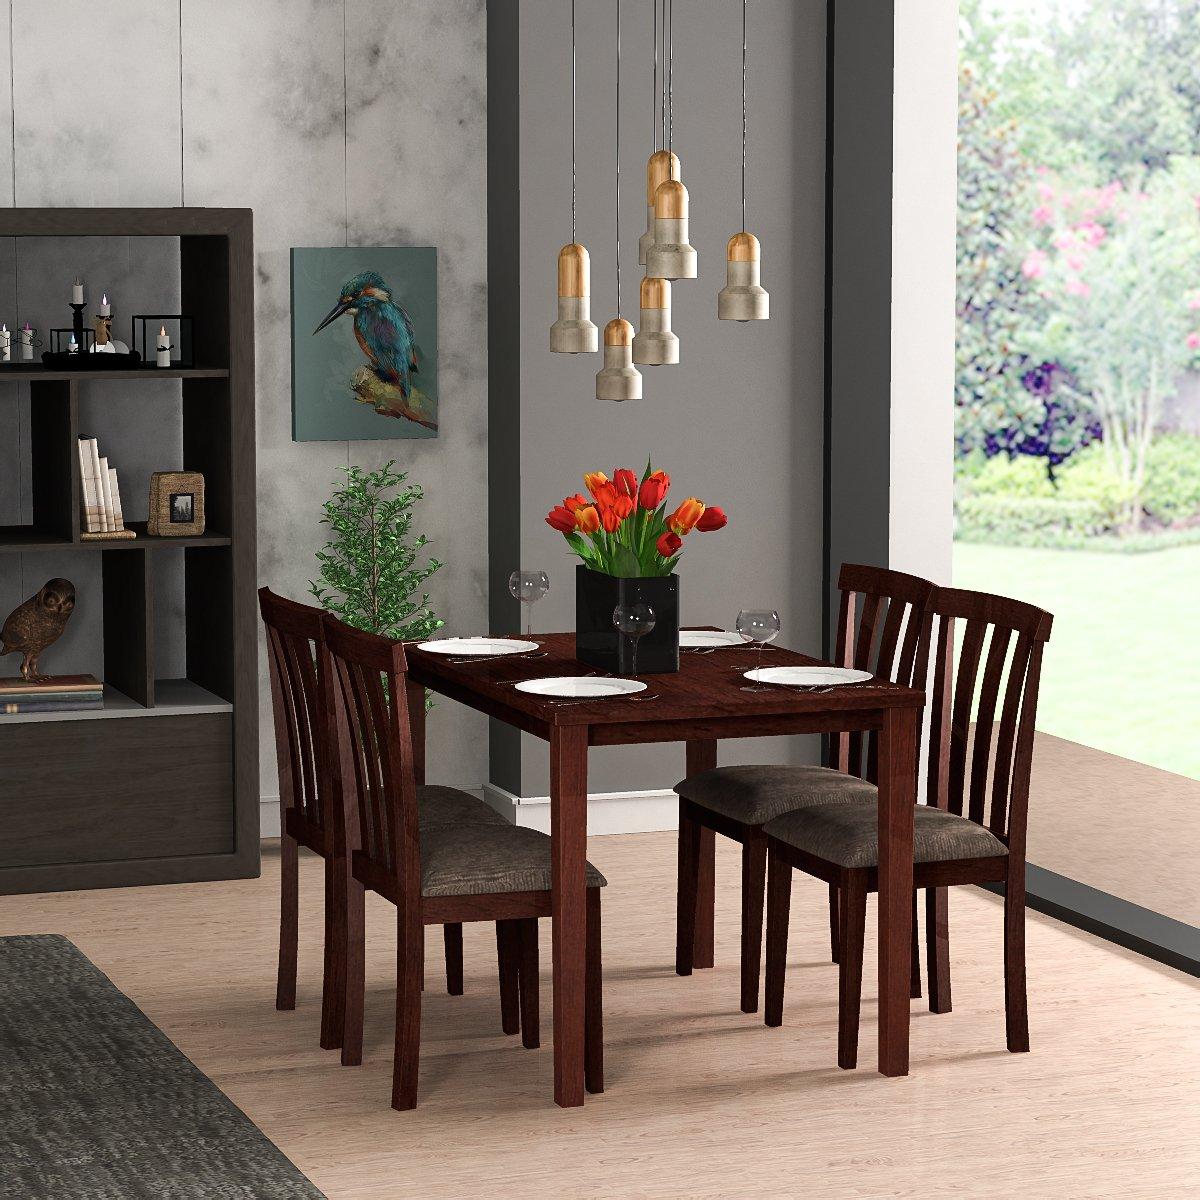 Forzza Miami Four Seater Solid Wood Dining Table Set Oak